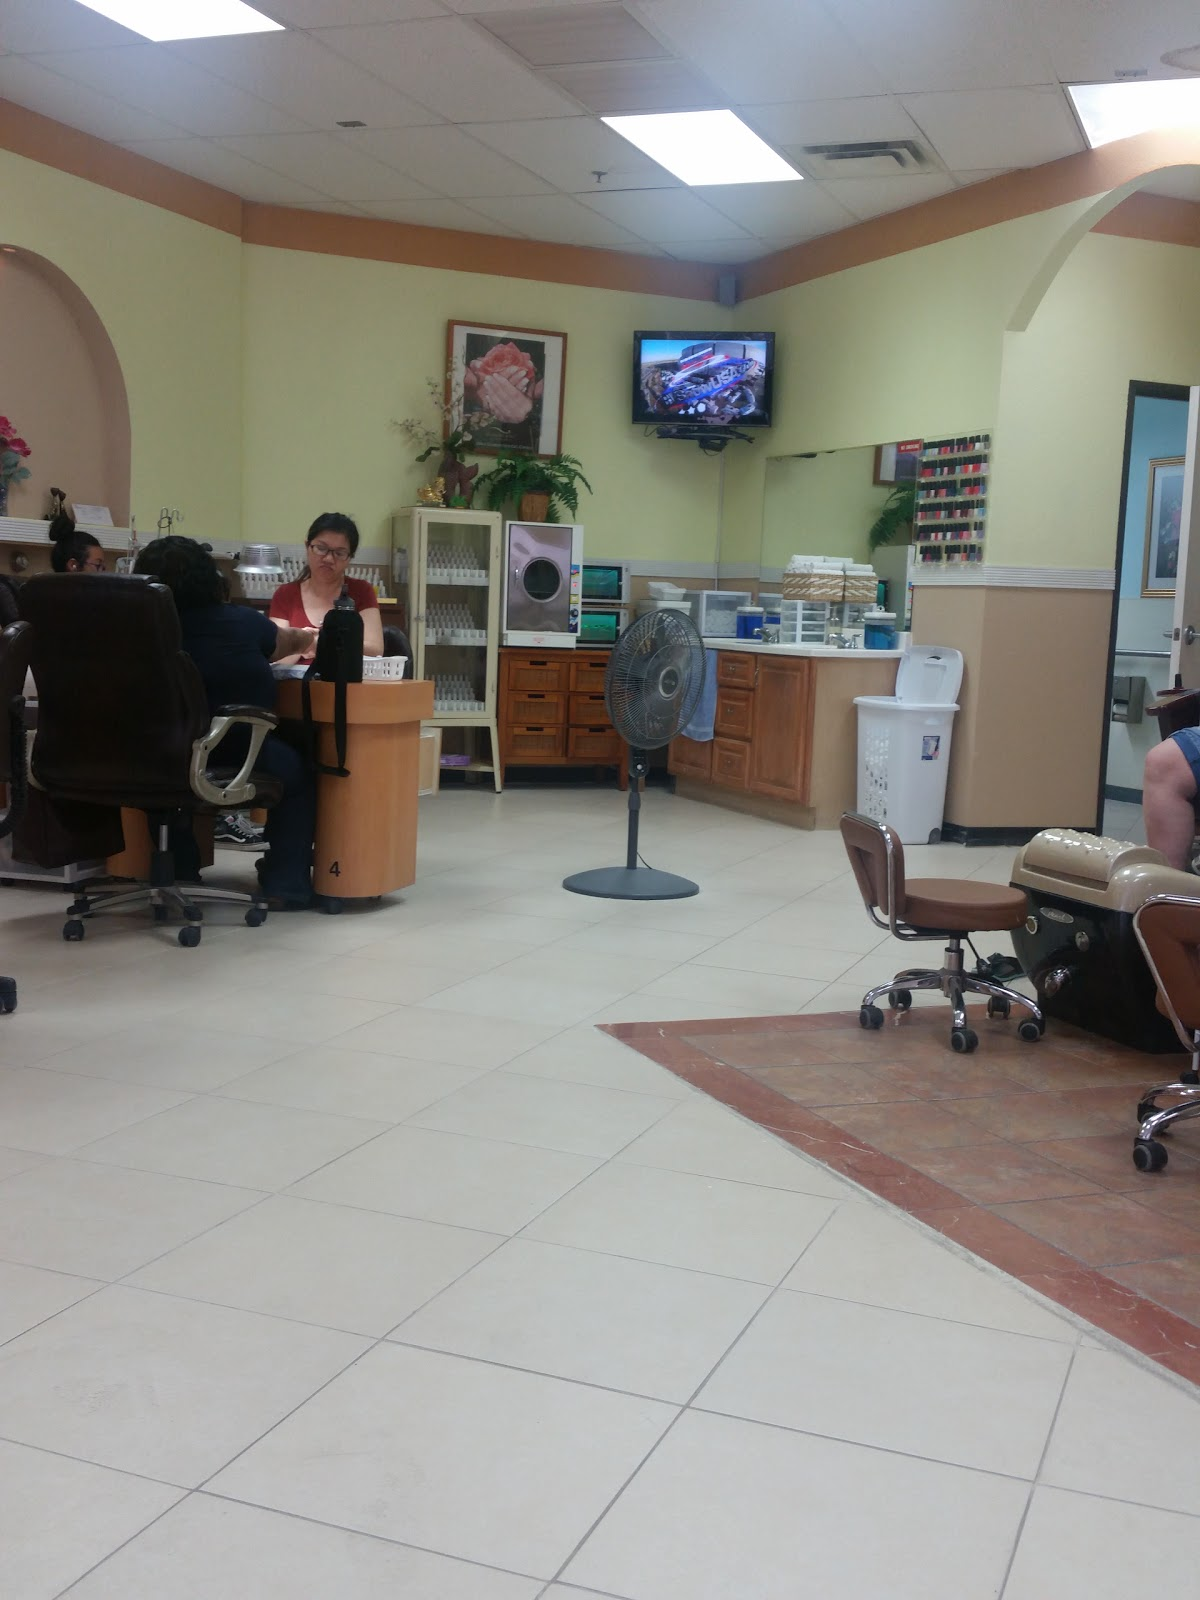 J D Nails, 1932 W Main St # B105, Mesa, Reviews and Appointments ...